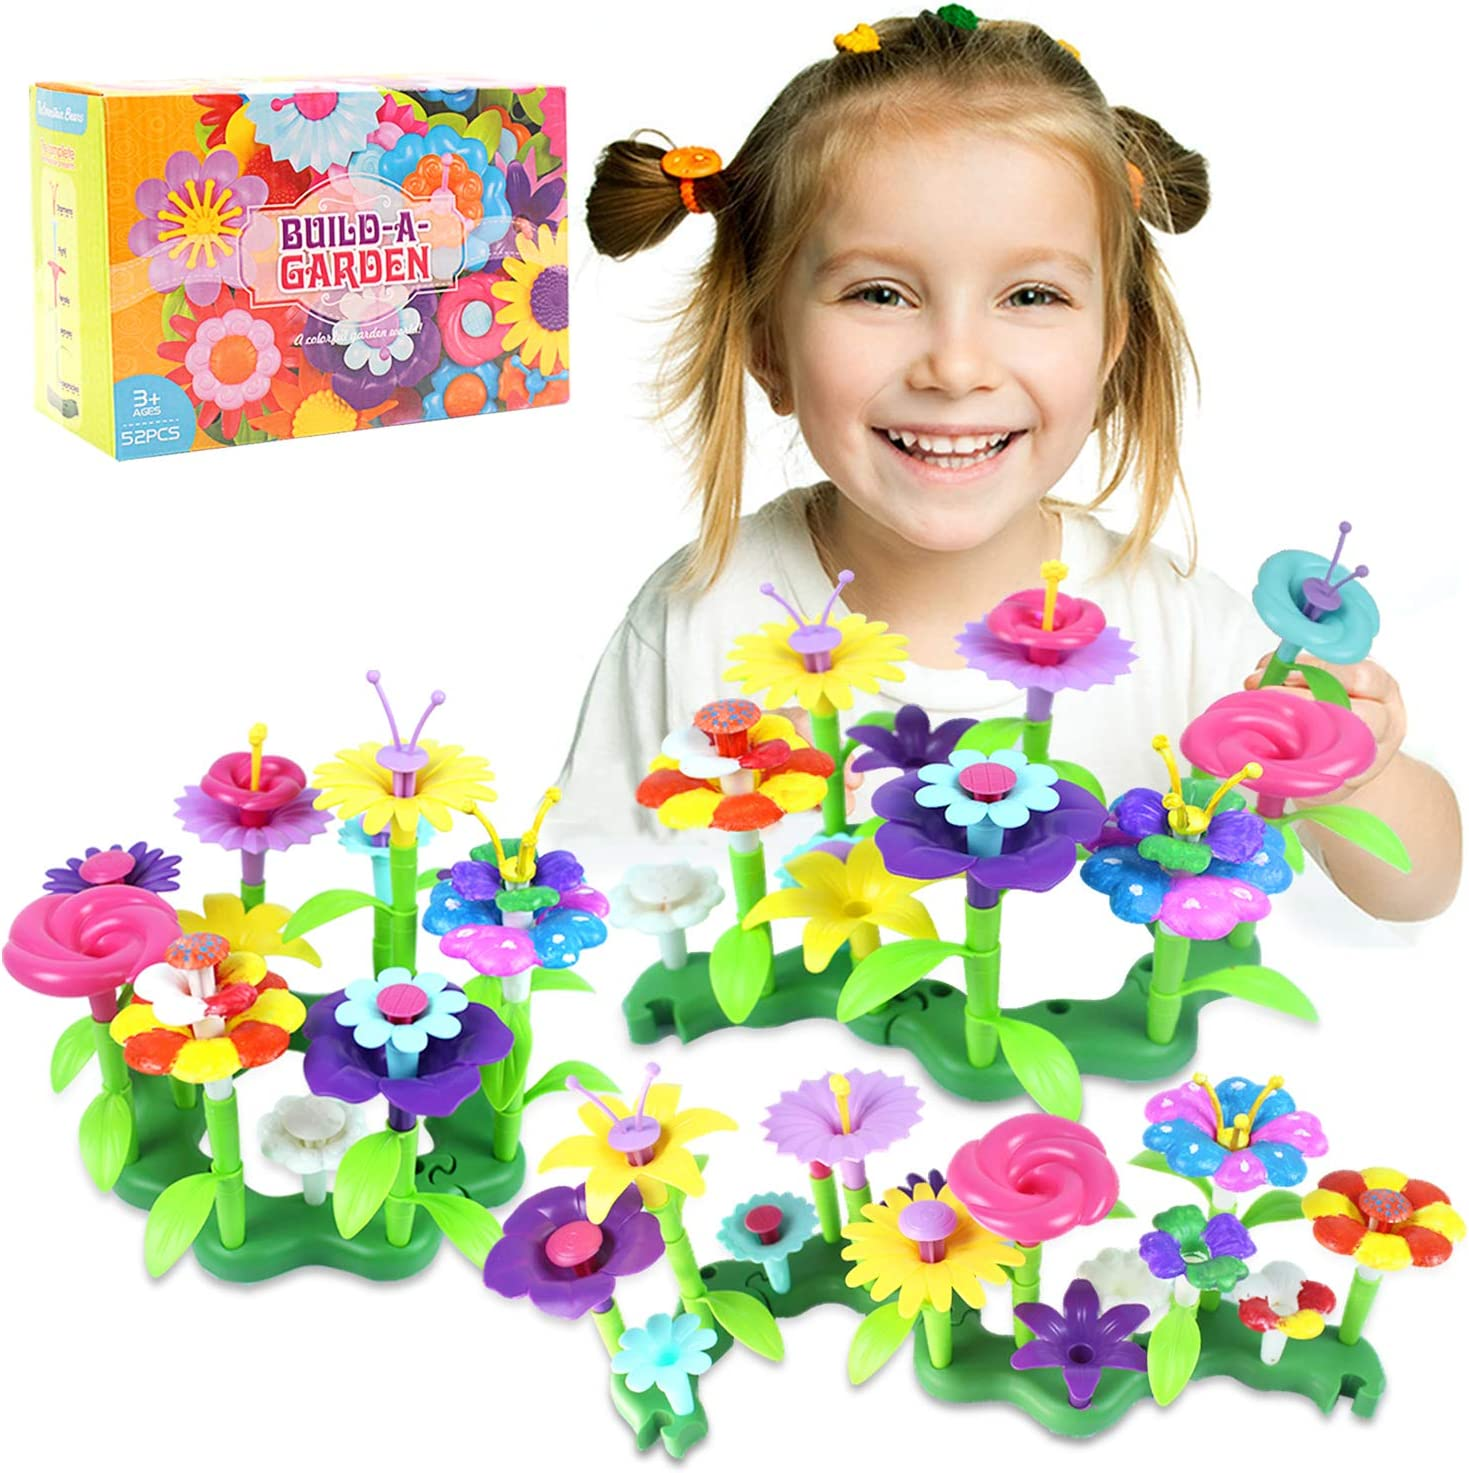 Byserten Flower Garden Building Toys, Pretend Gardening STEM Toy Painting Kit Crafts for Kids Outdoor Toddler Playset Birthday Gifts for 3 4 5 6 Year Old Girls